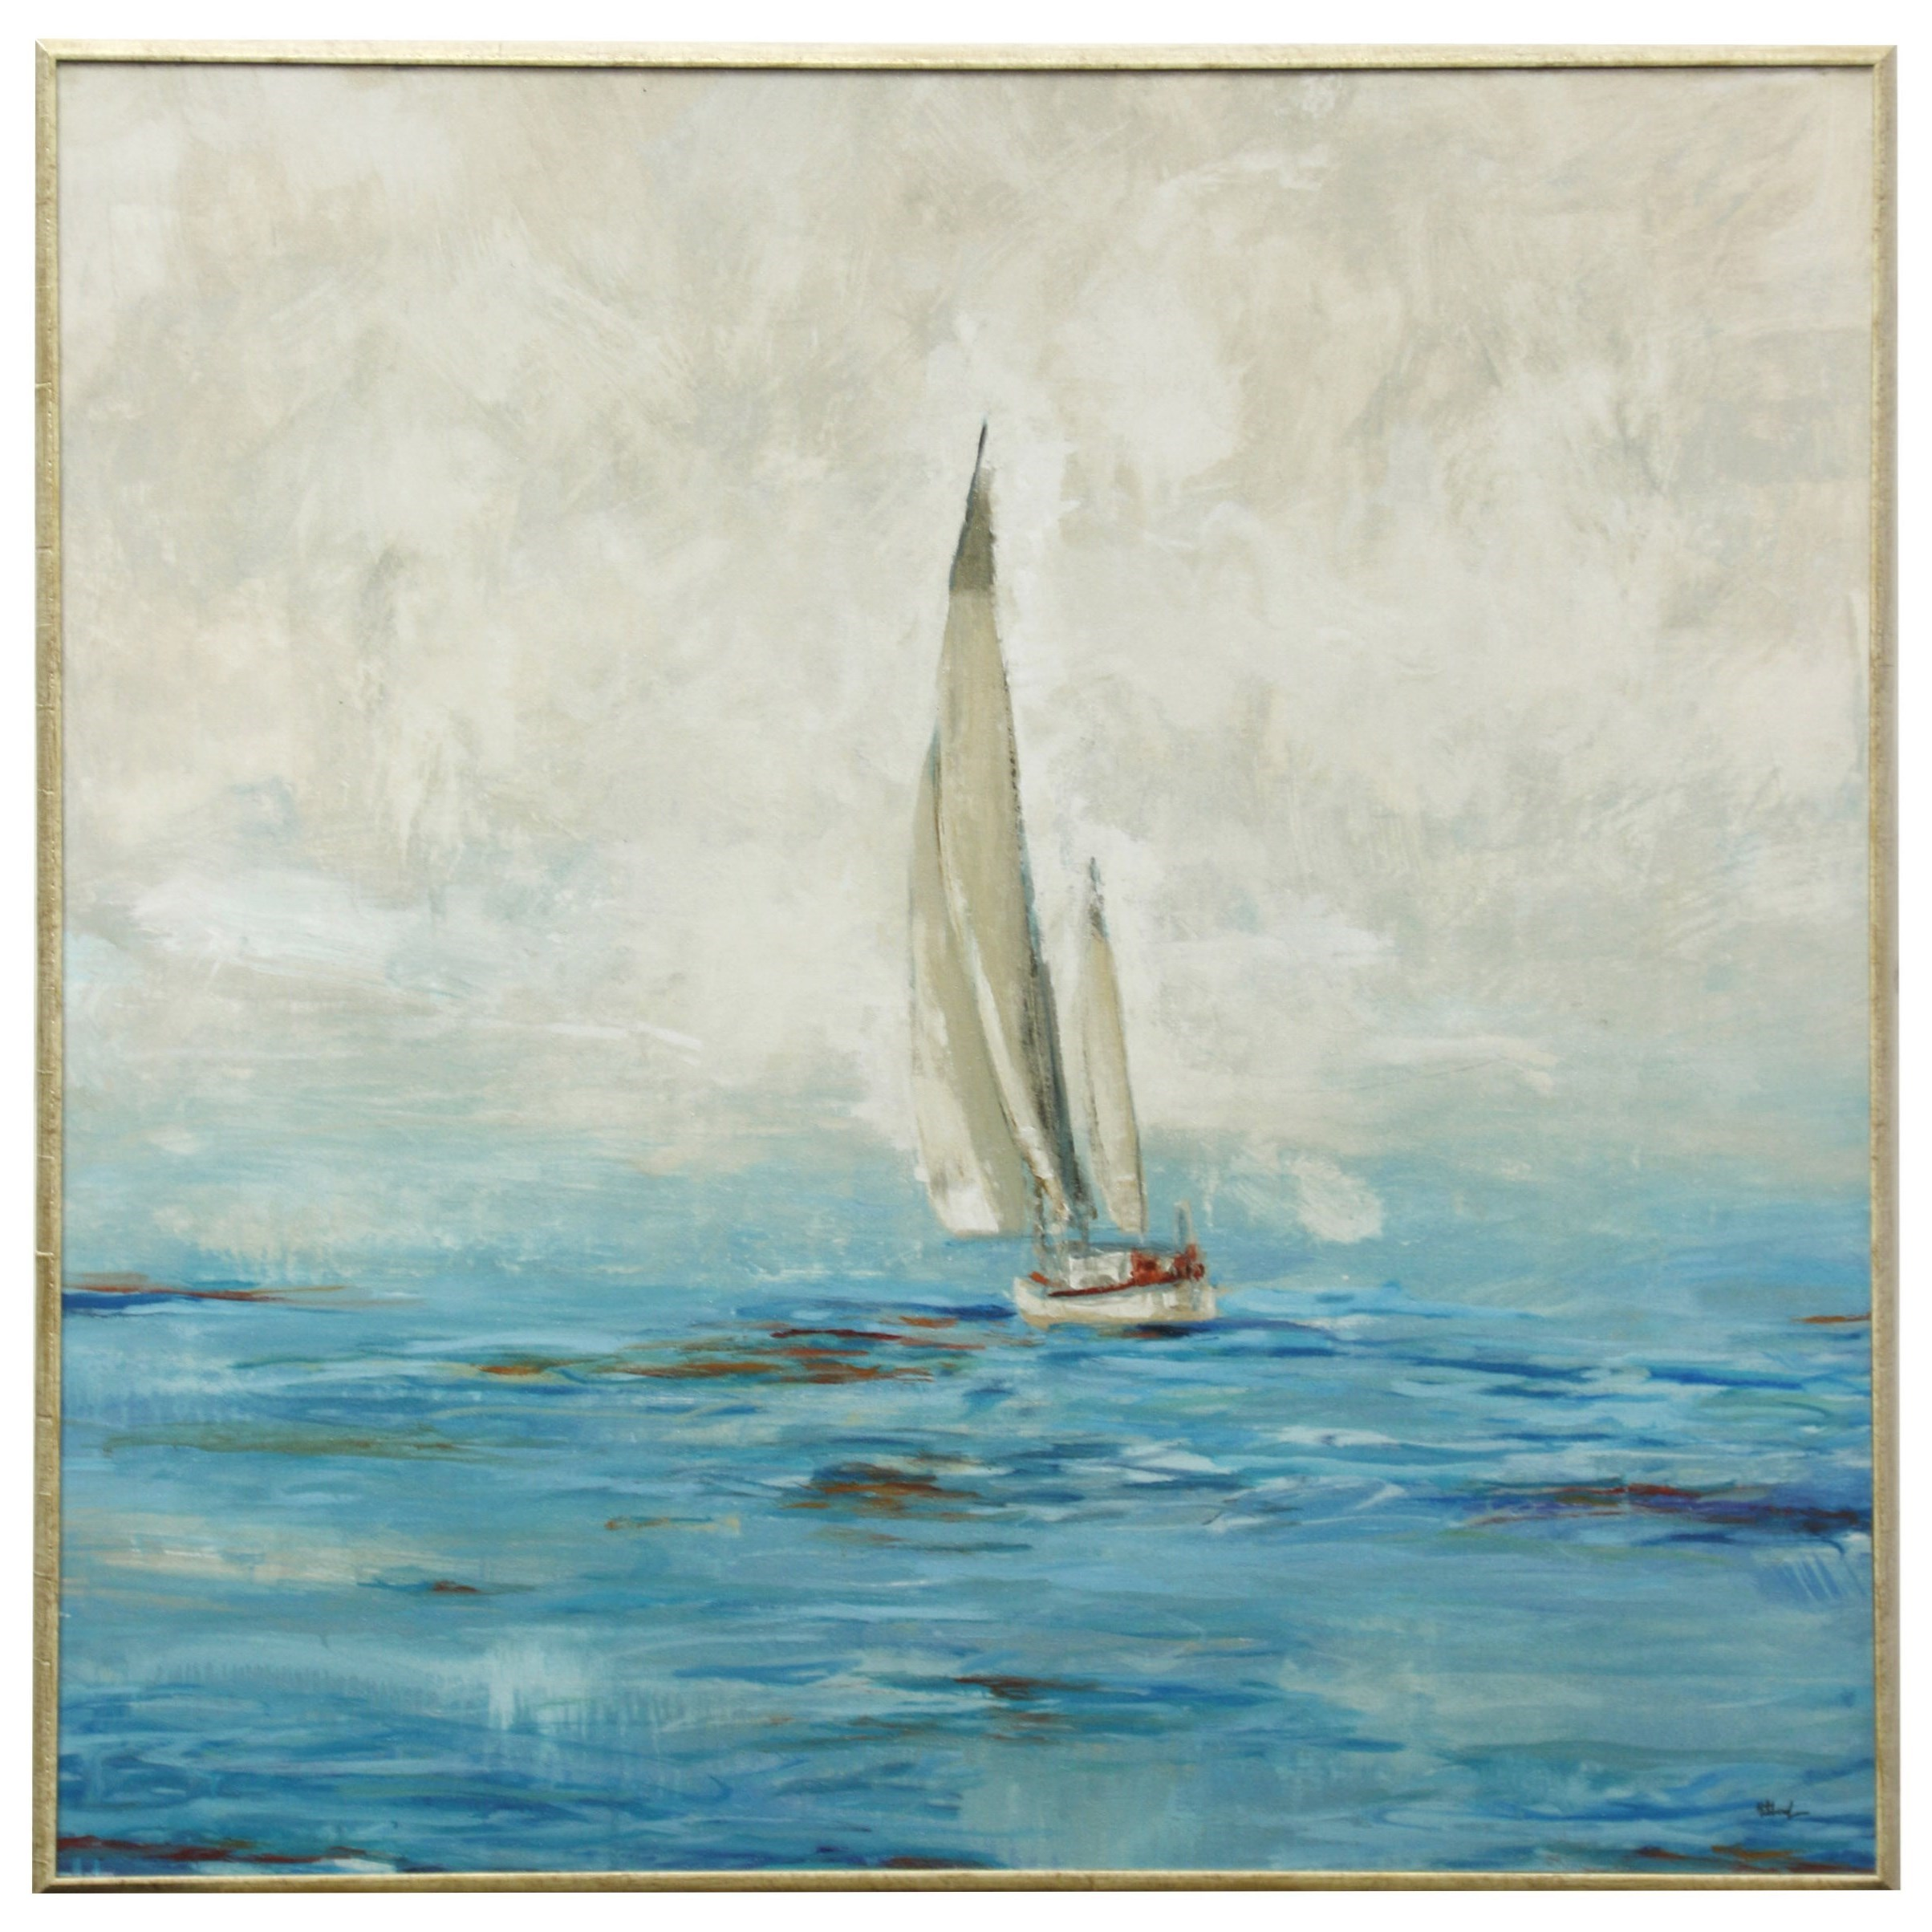 Wall Décor Sailboat Framed Wall Art by StyleCraft at Alison Craig Home Furnishings